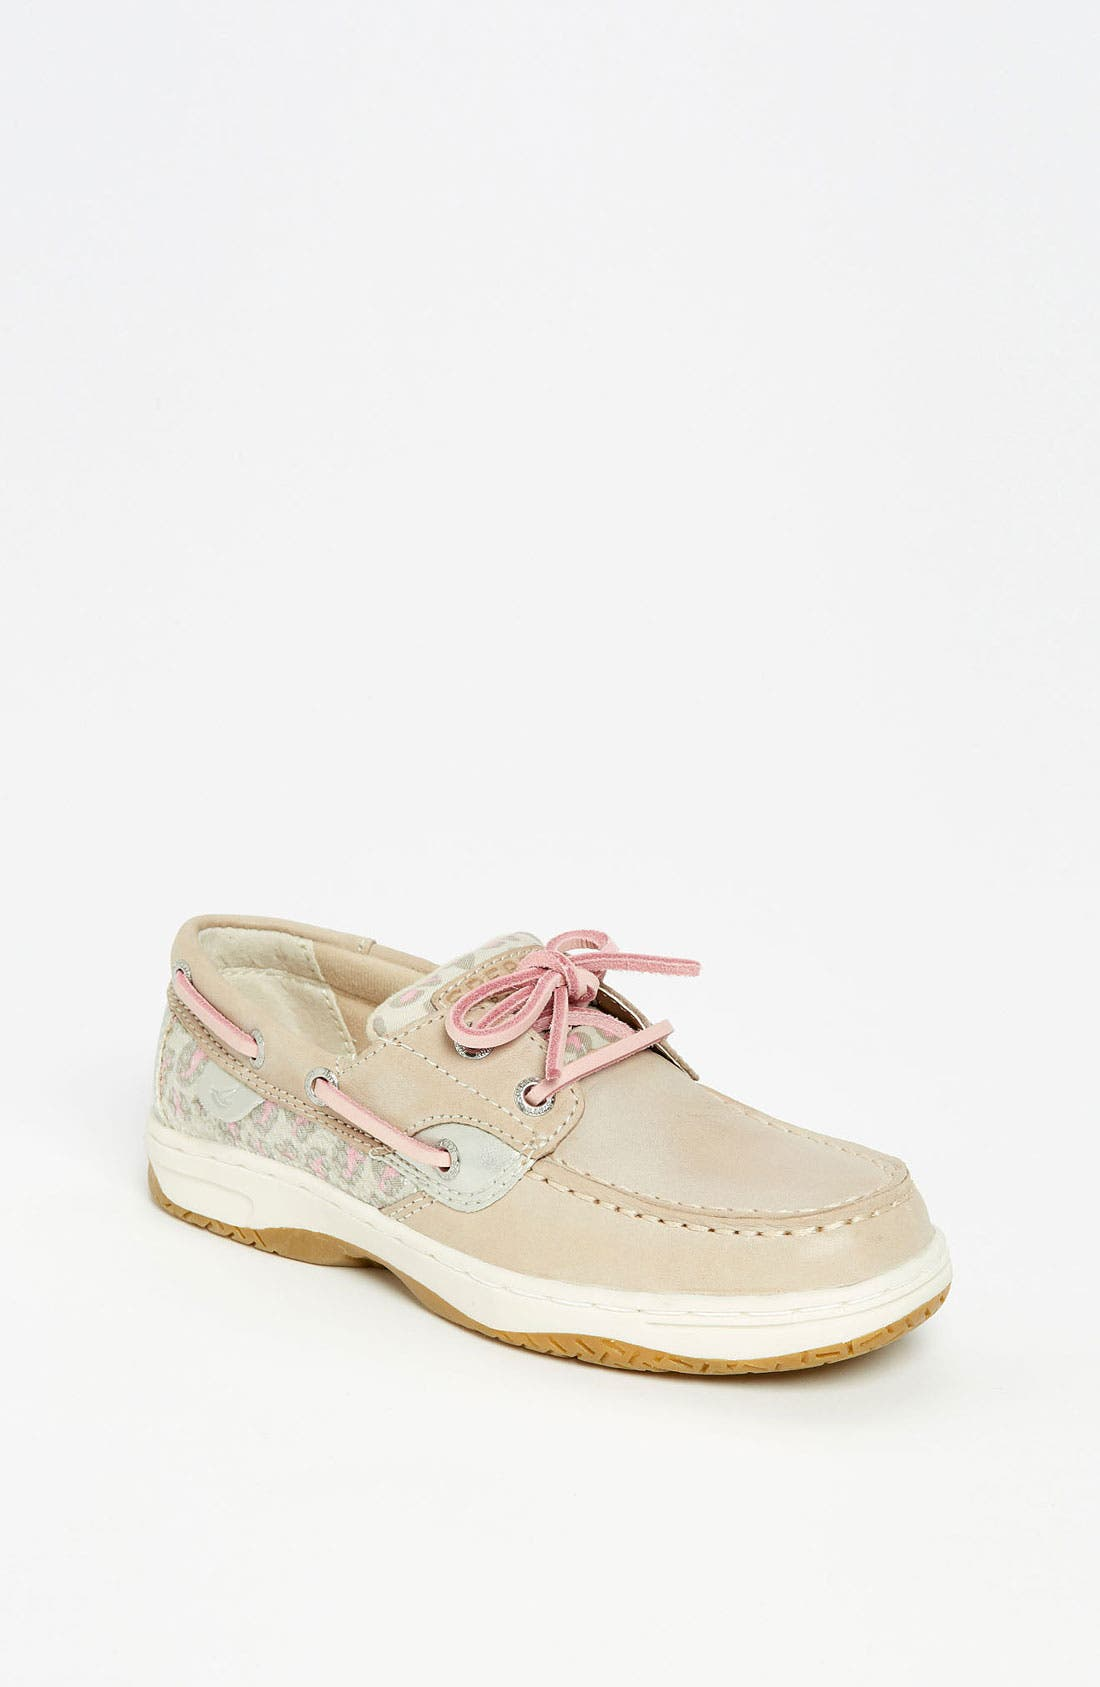 Alternate Image 1 Selected - Sperry Top-Sider® 'Bluefish' Boat Shoe (Walker, Toddler, Little Kid & Big Kid)